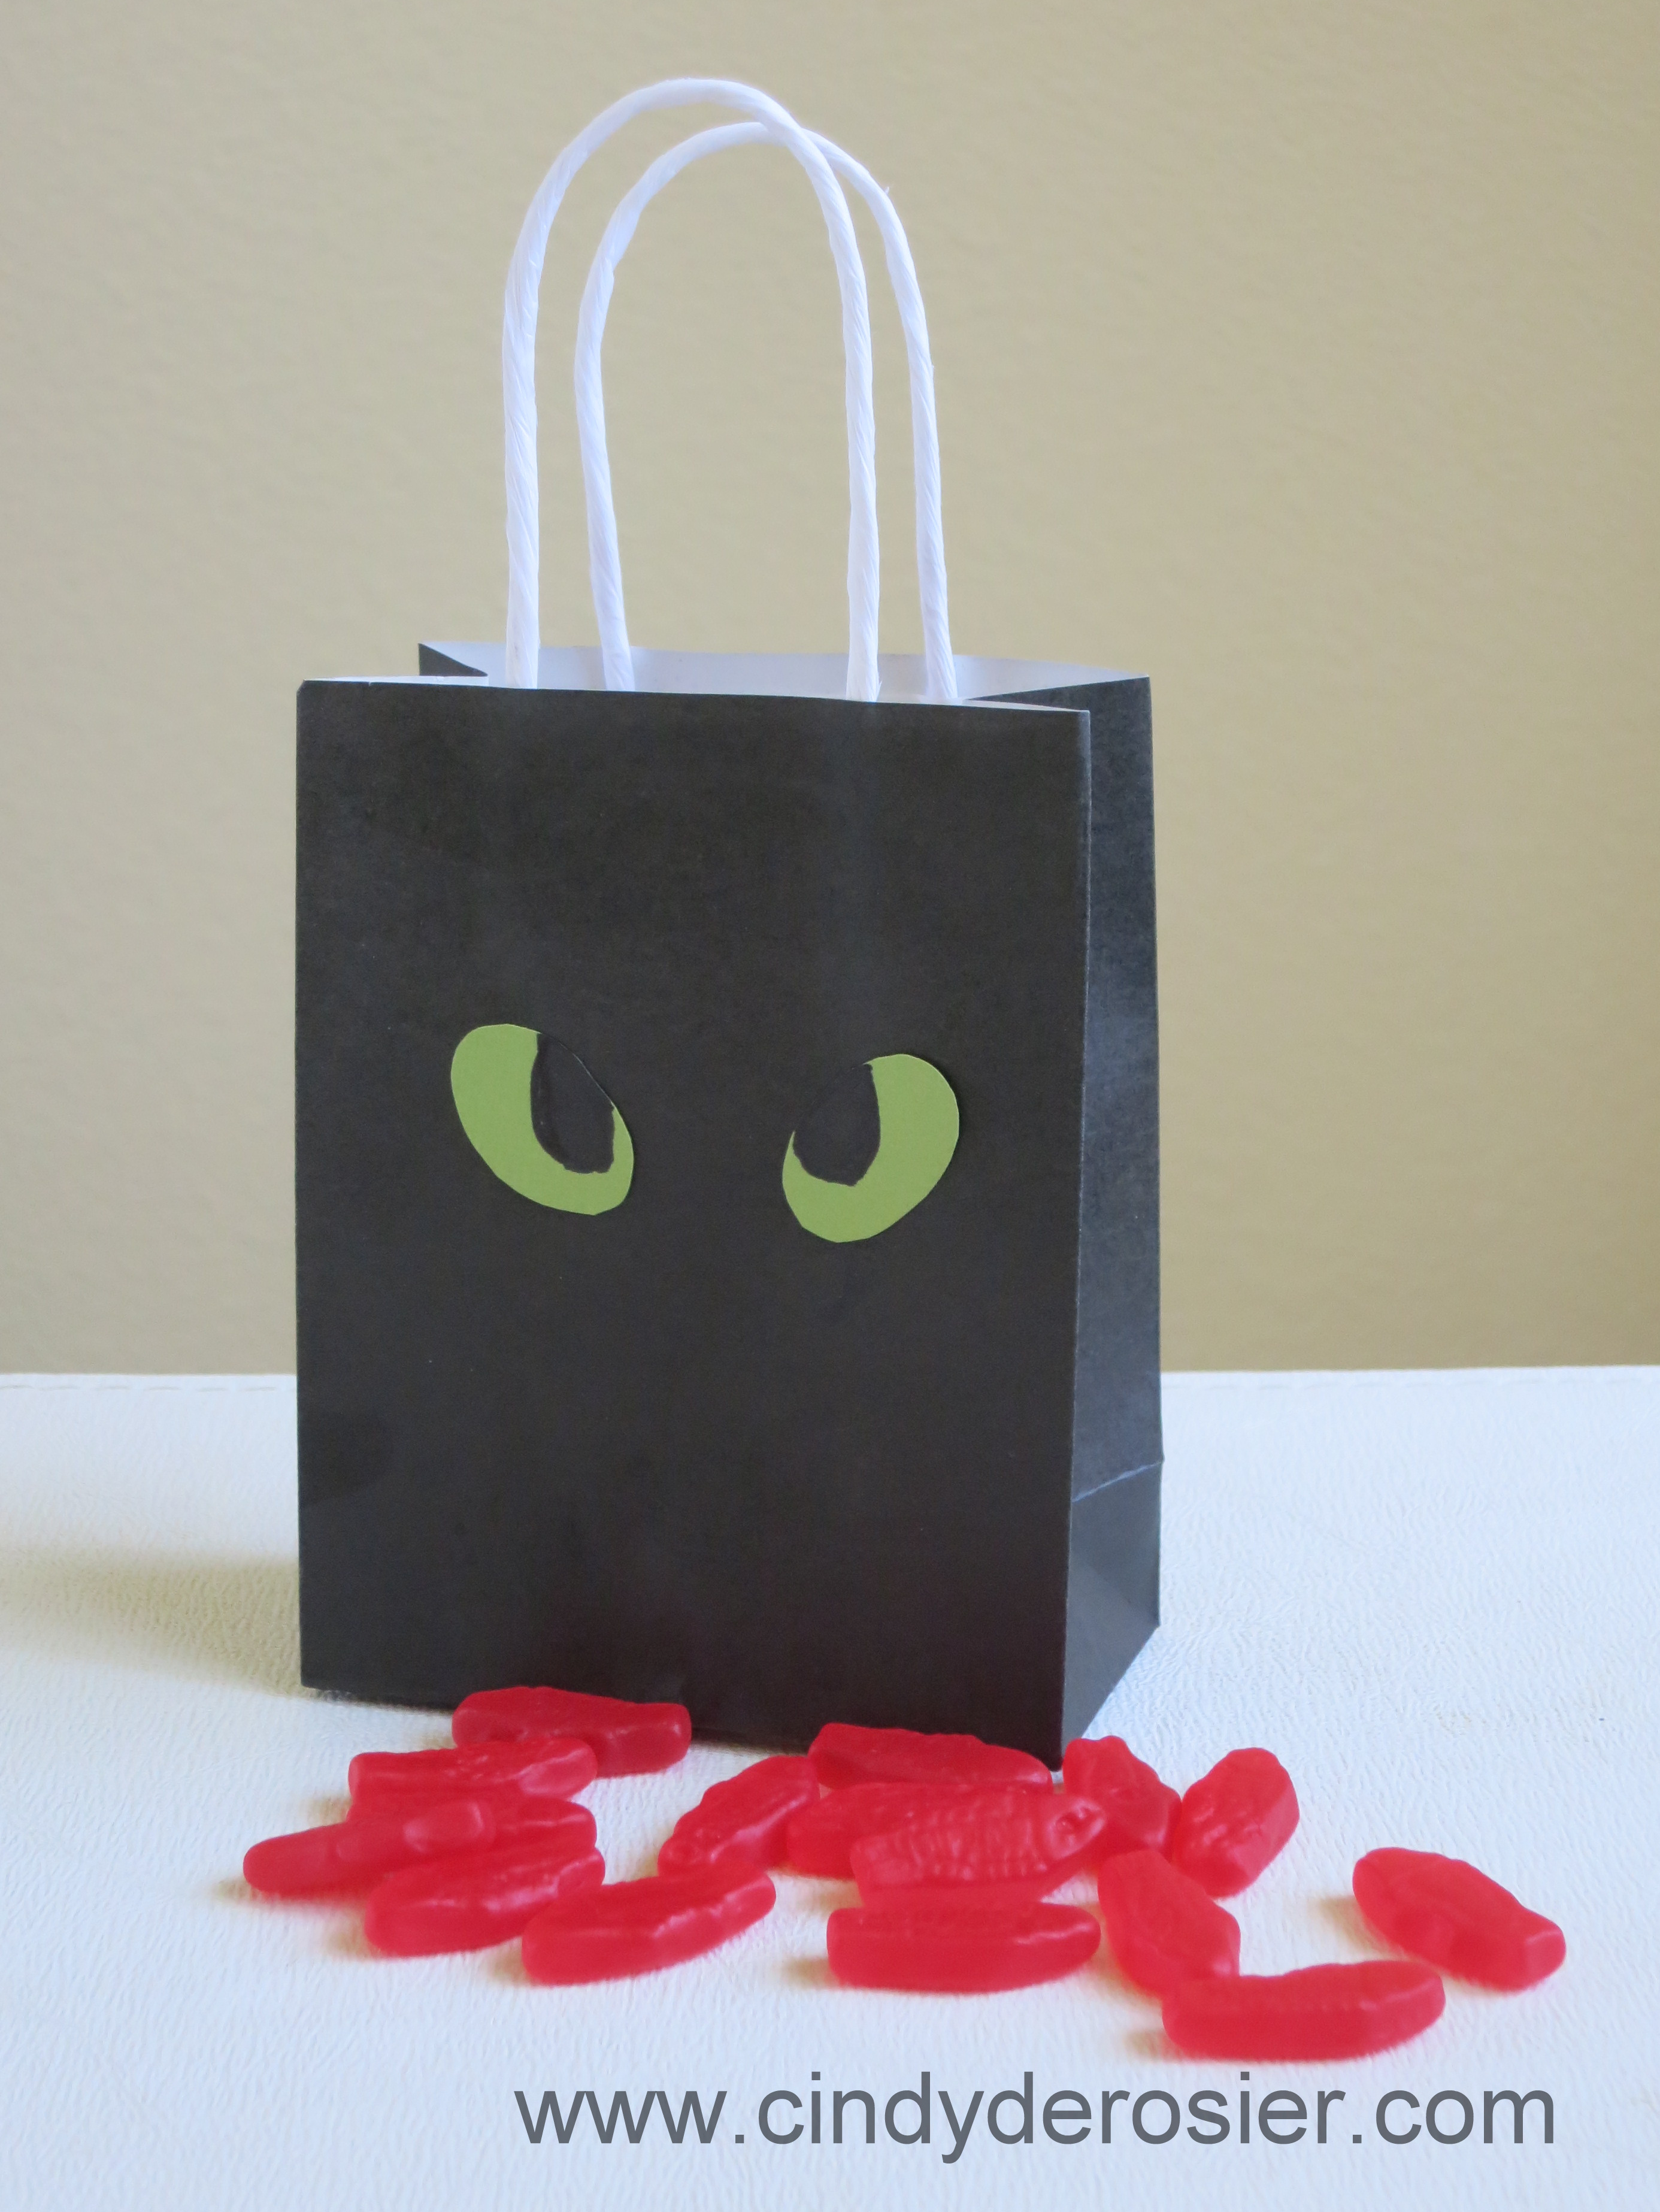 How To Train Your Dragon Party Fun Family Crafts